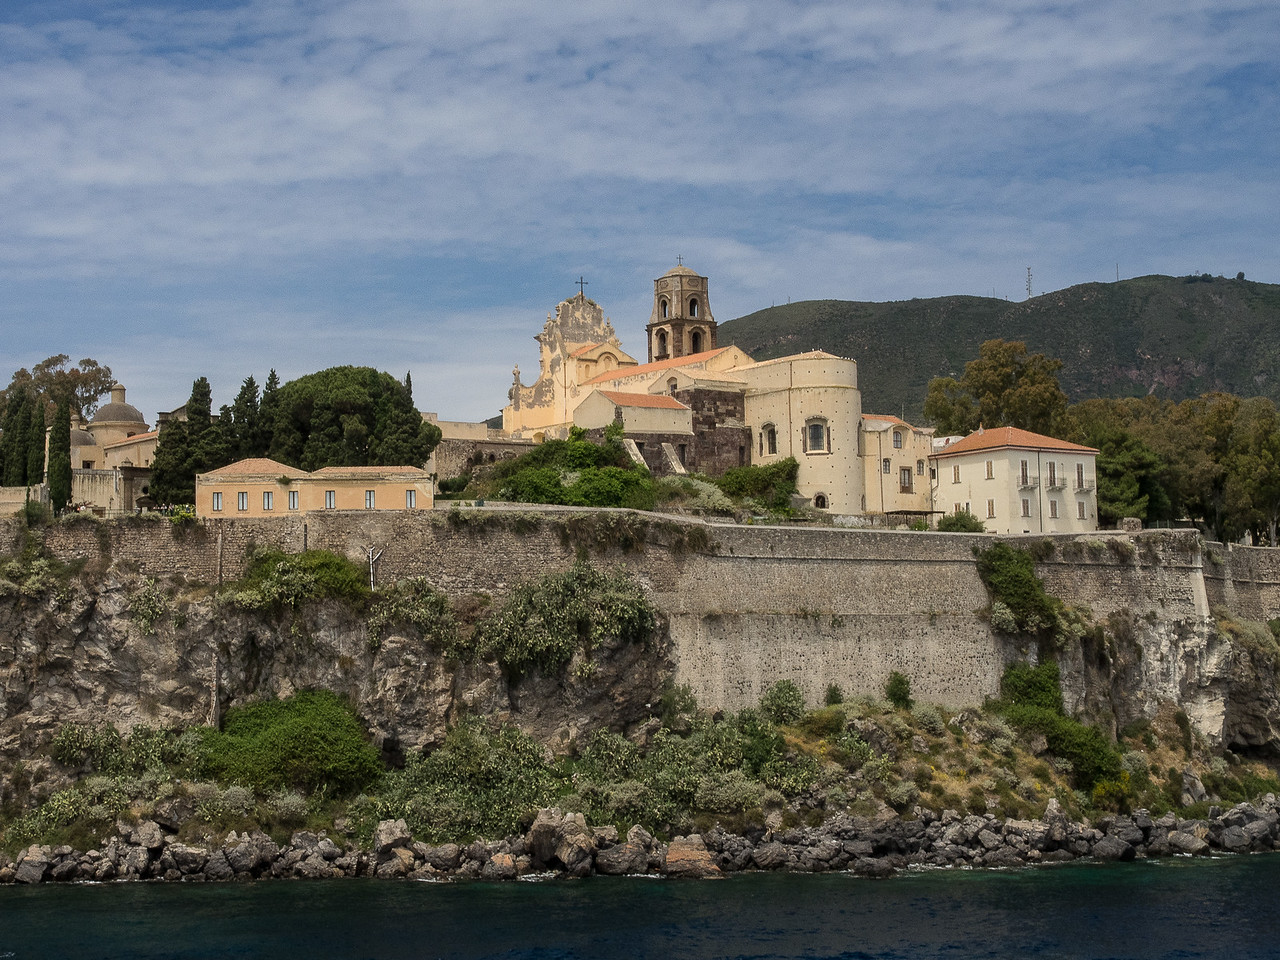 Lipari Acropolis from the sea with the Cathedral (11 th. Century Norman)